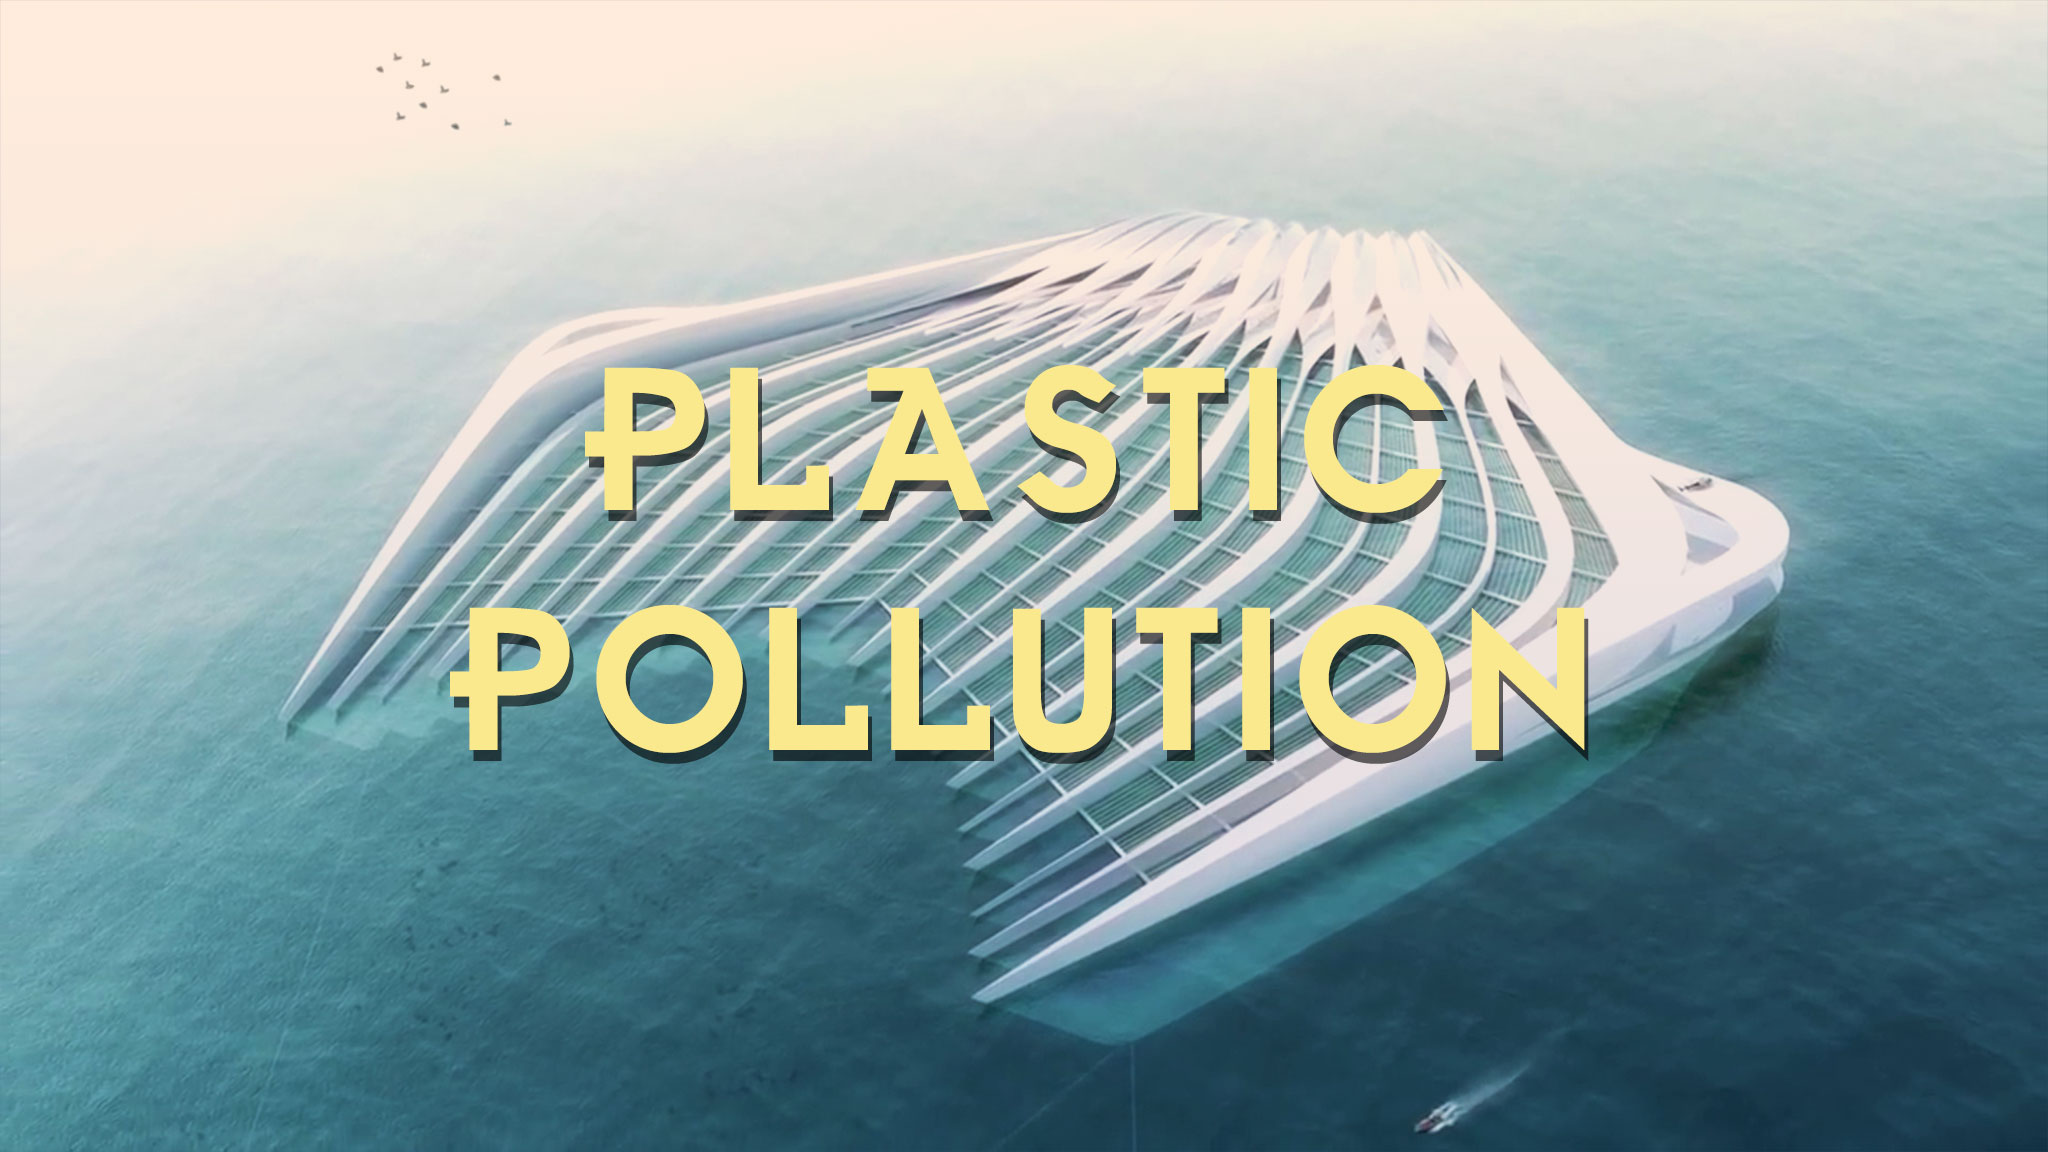 photo of a sci-fi ray-like filter platform in the ocean acts as a link to the Plastic Pollution film page